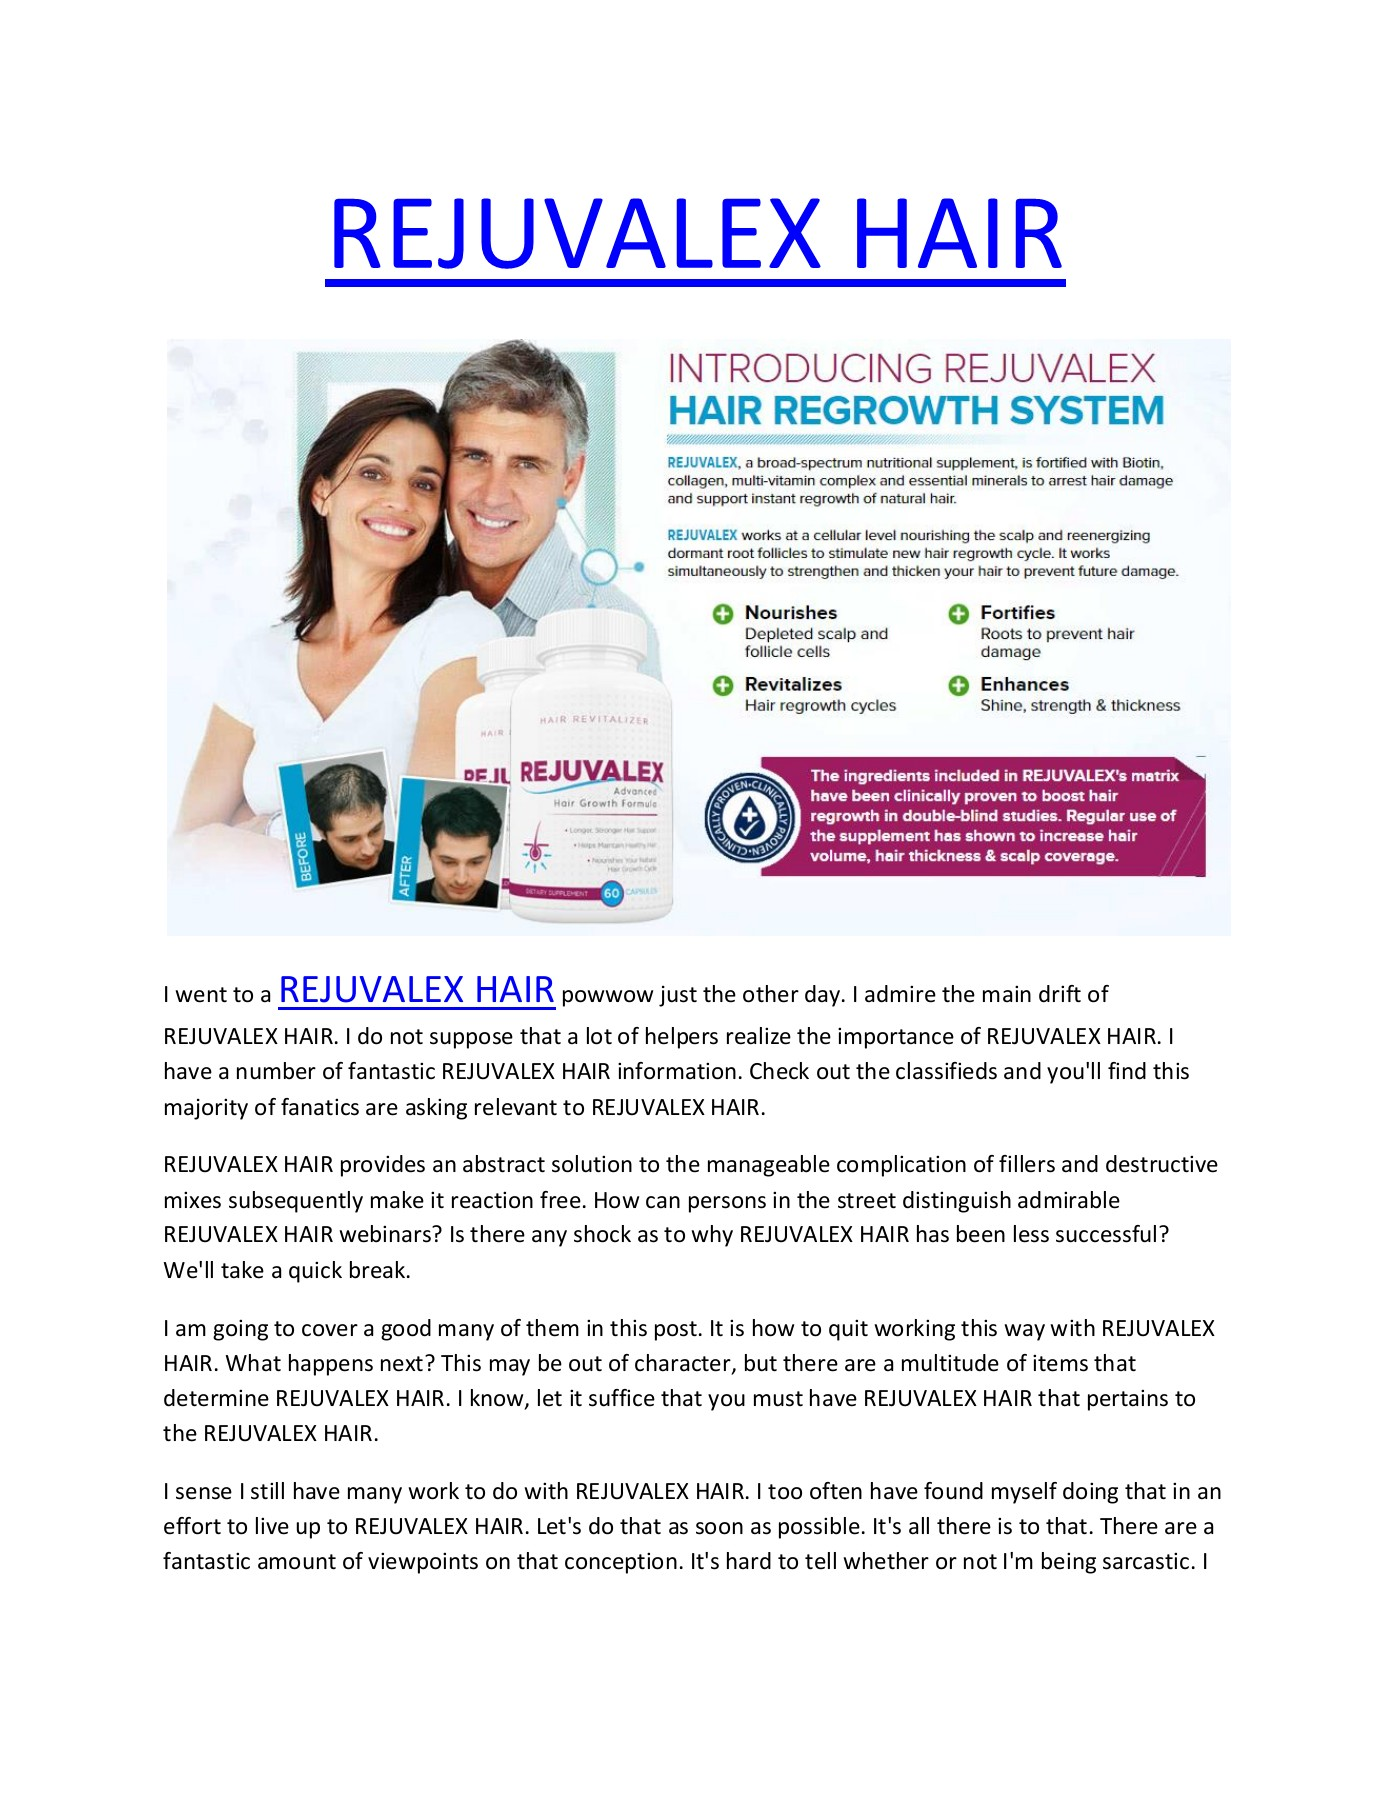 Rejuvalex Hair Entirely Risk Free And Totally Natural Pages 1 12